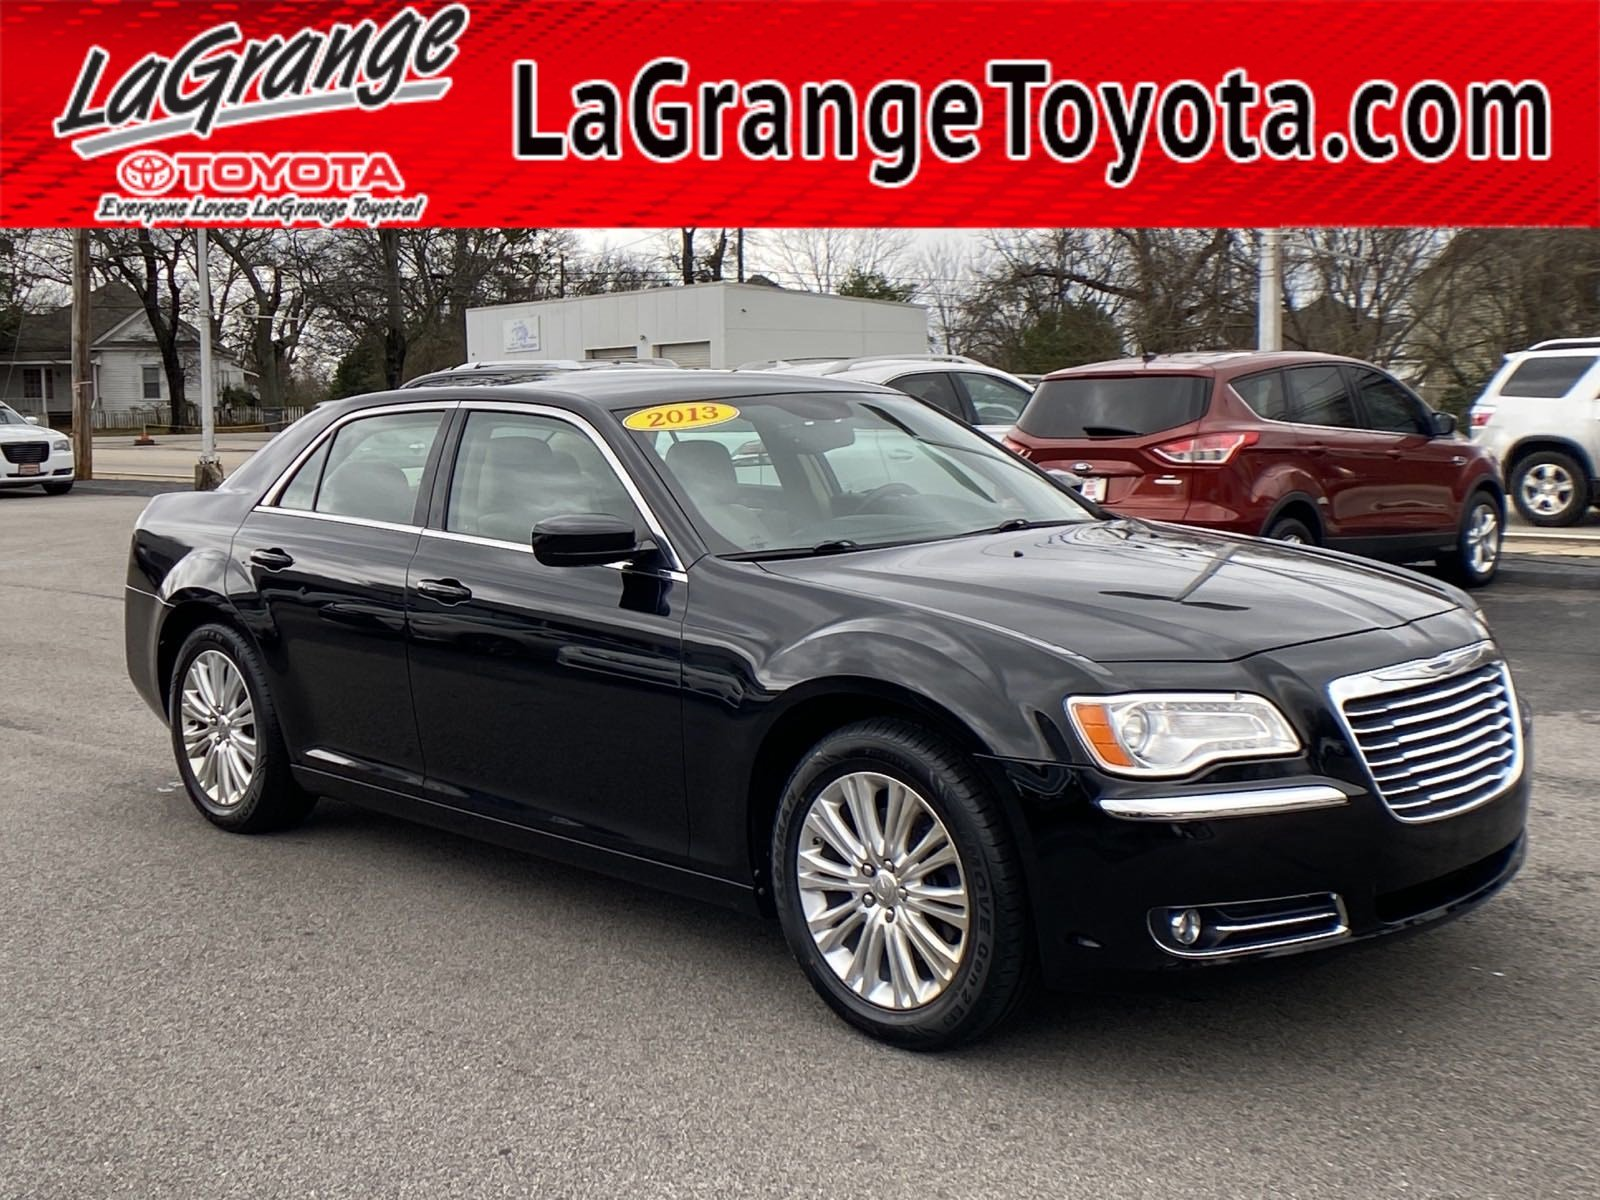 Pre-Owned 2013 Chrysler 300 4dr Sdn AWD